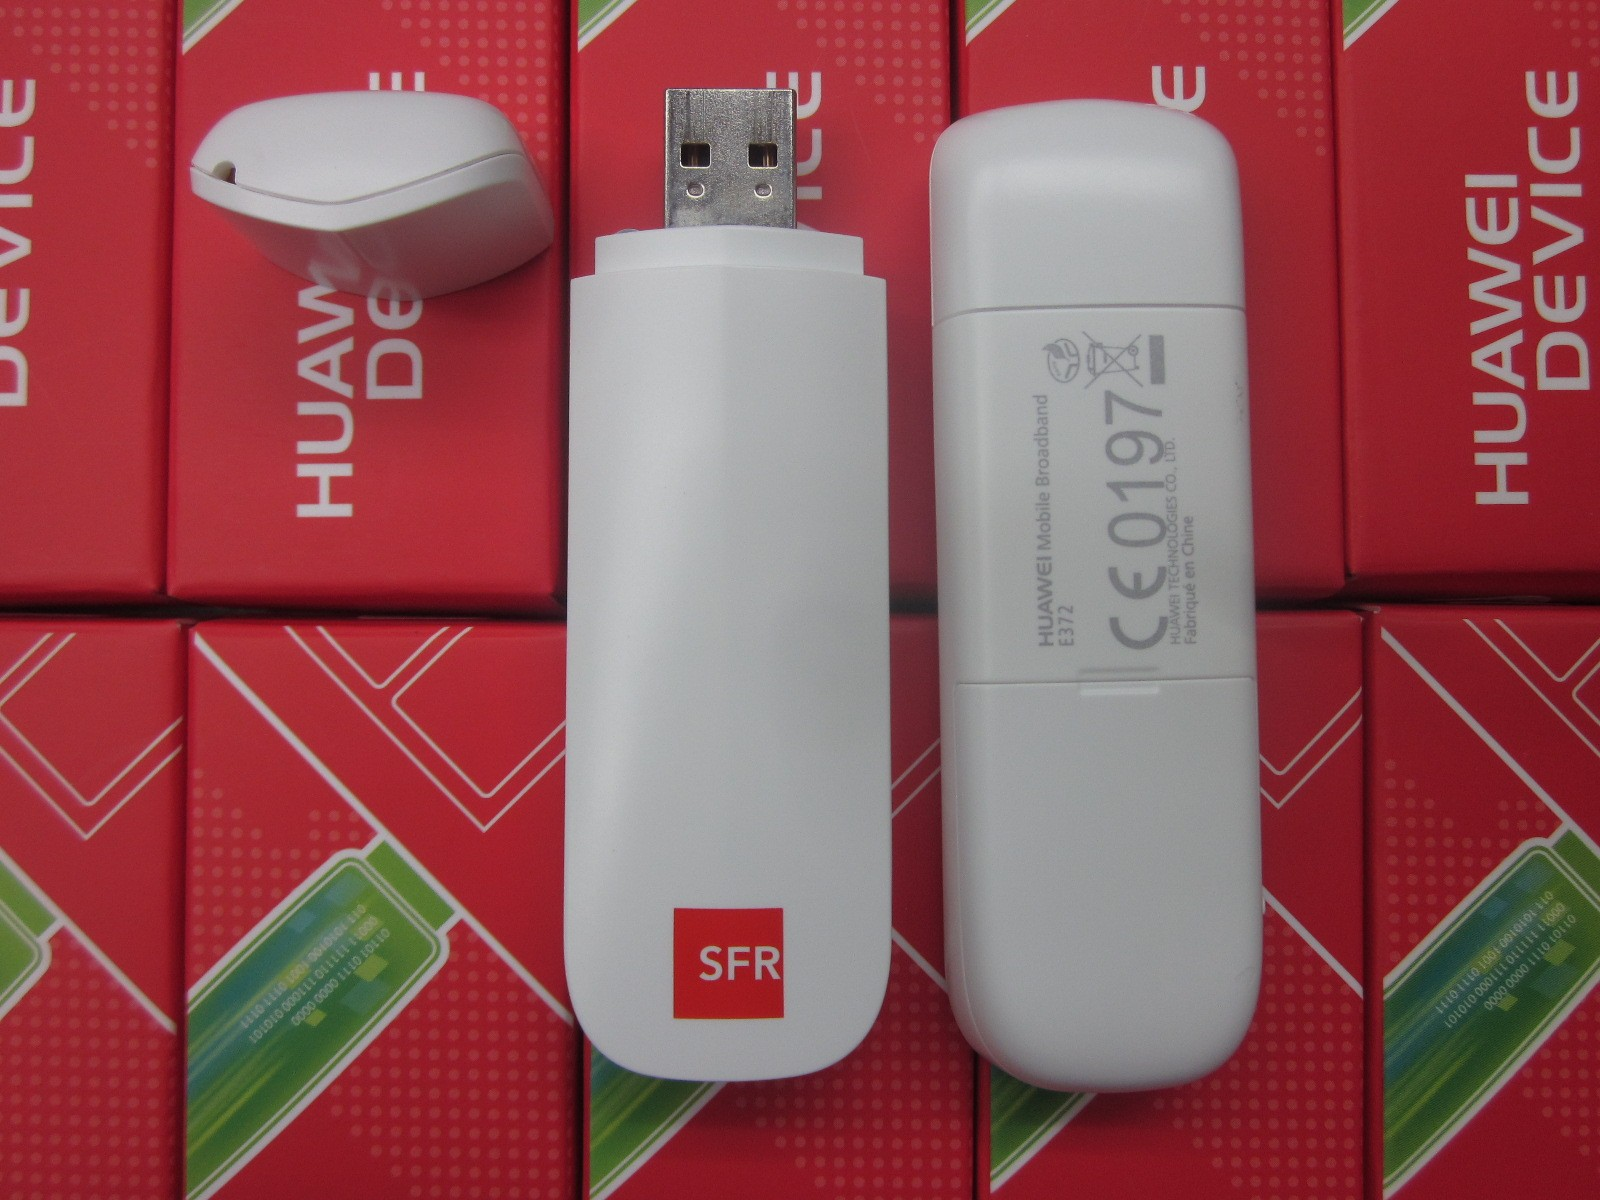 SFR Huawei E372 DC-HSPA+ USB Dongle Modem